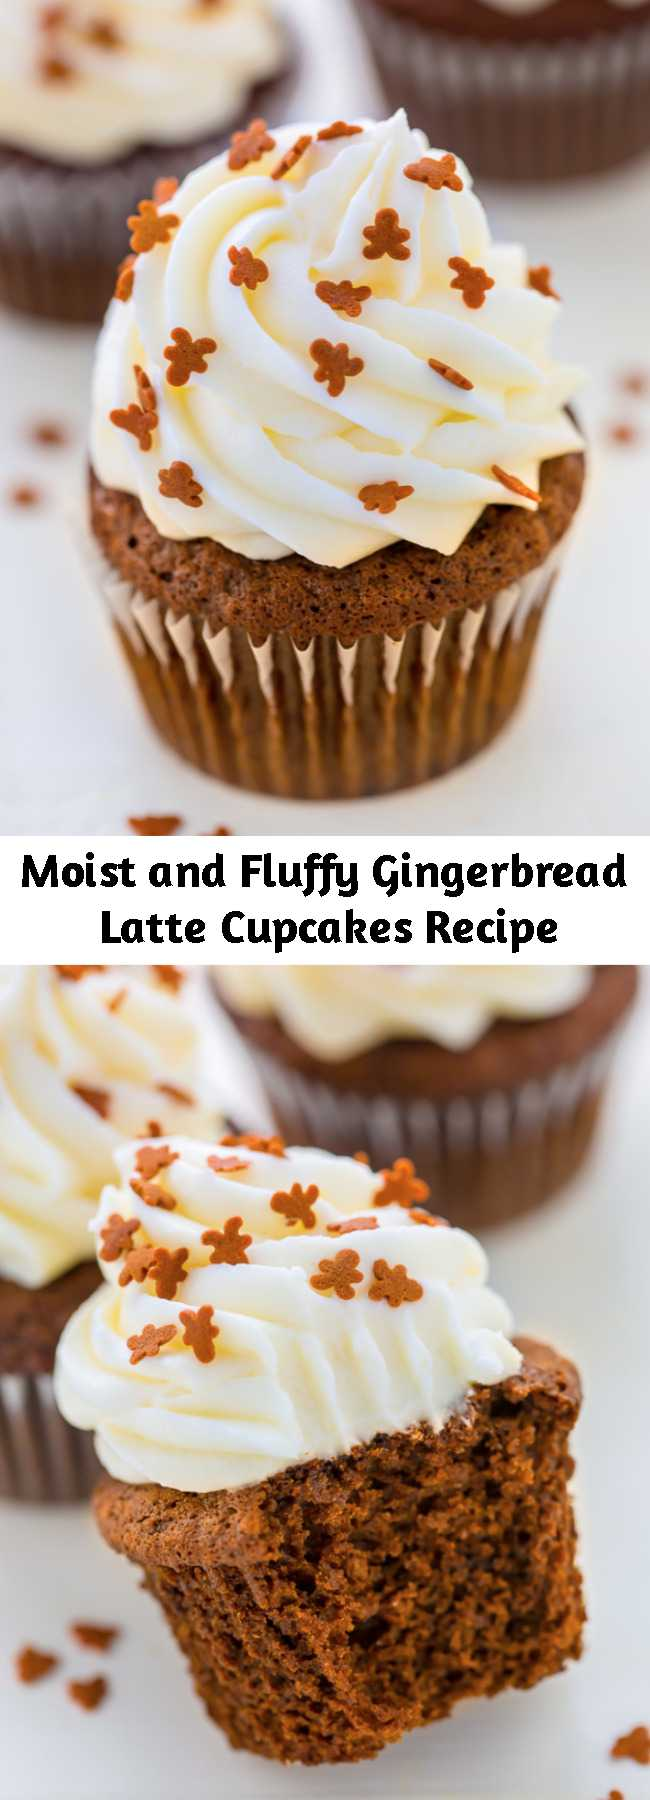 Moist and Fluffy Gingerbread Latte Cupcakes Recipe - These gingerbread latte cupcakes are moist, not too sweet, and perfectly spiced. The cream cheese frosting is thick, fluffy, and flavored with just a kick of fresh lemon. They're going to be the hit of your holiday party!